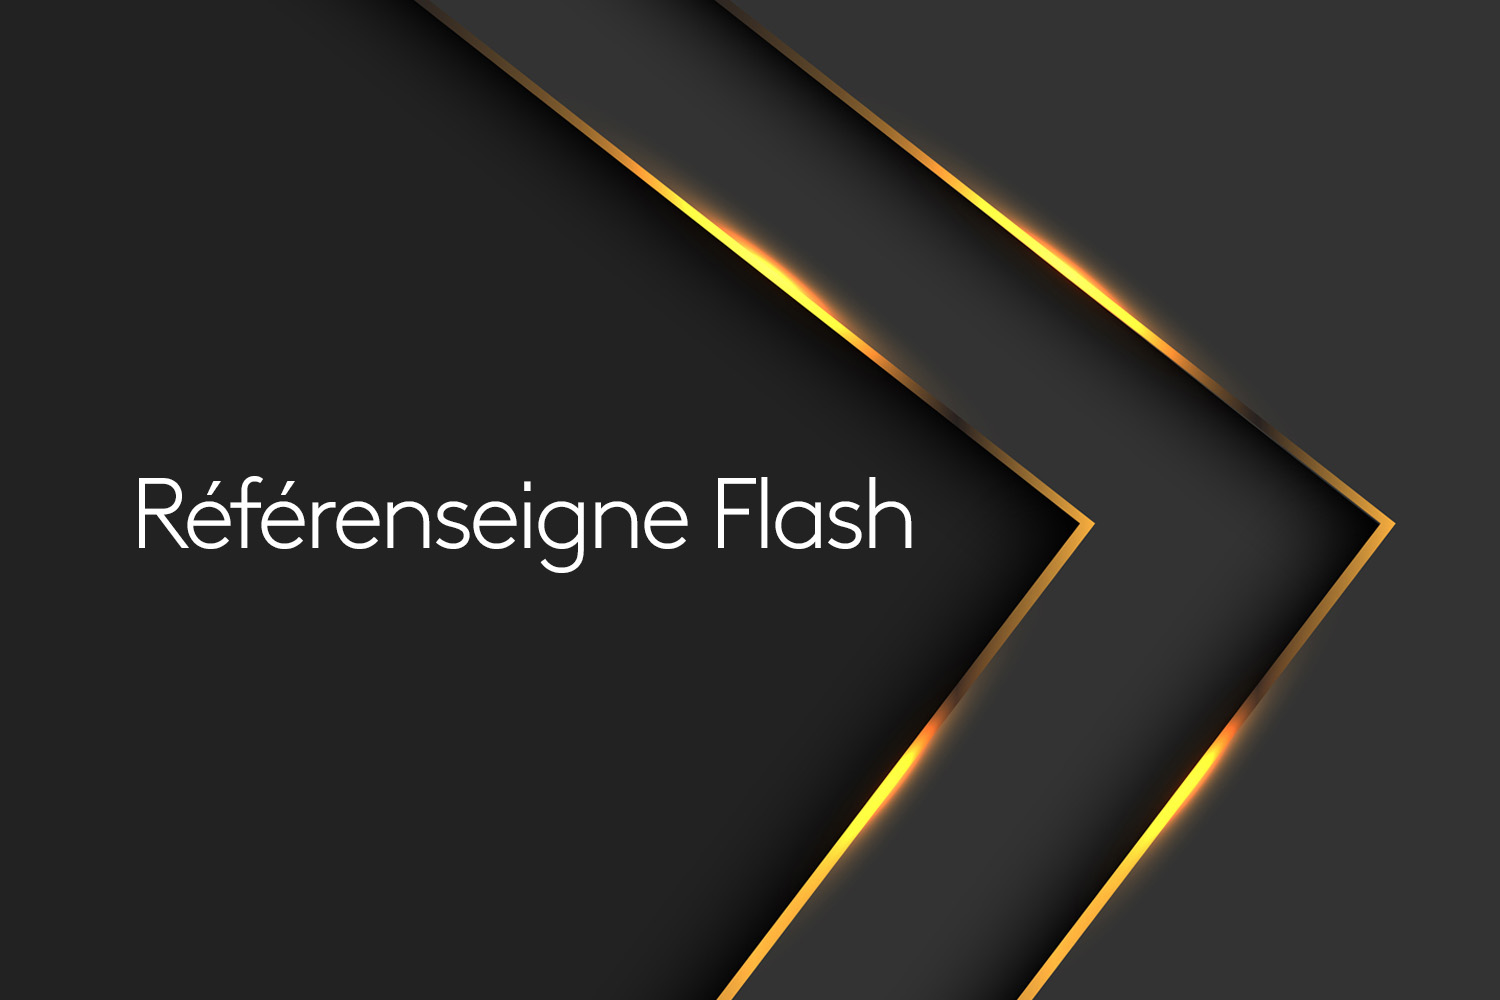 referenseigne flash